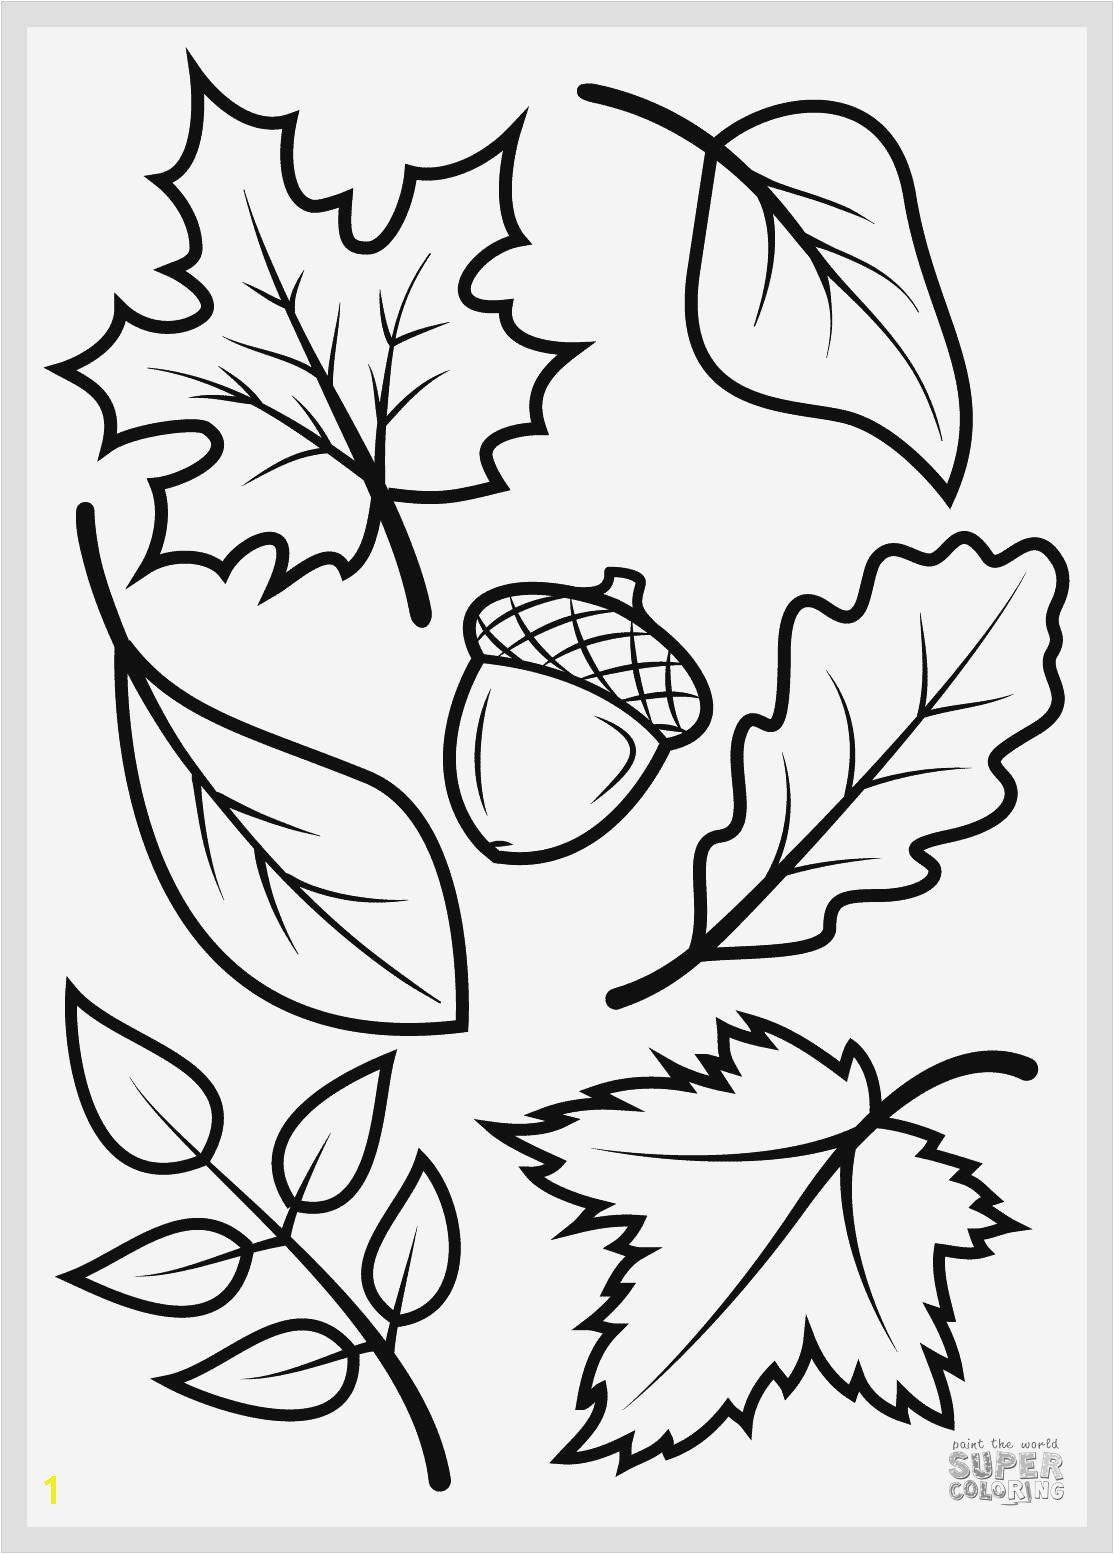 Printable Coloring Pages Squirrels Inspirational Engaging Fall 33